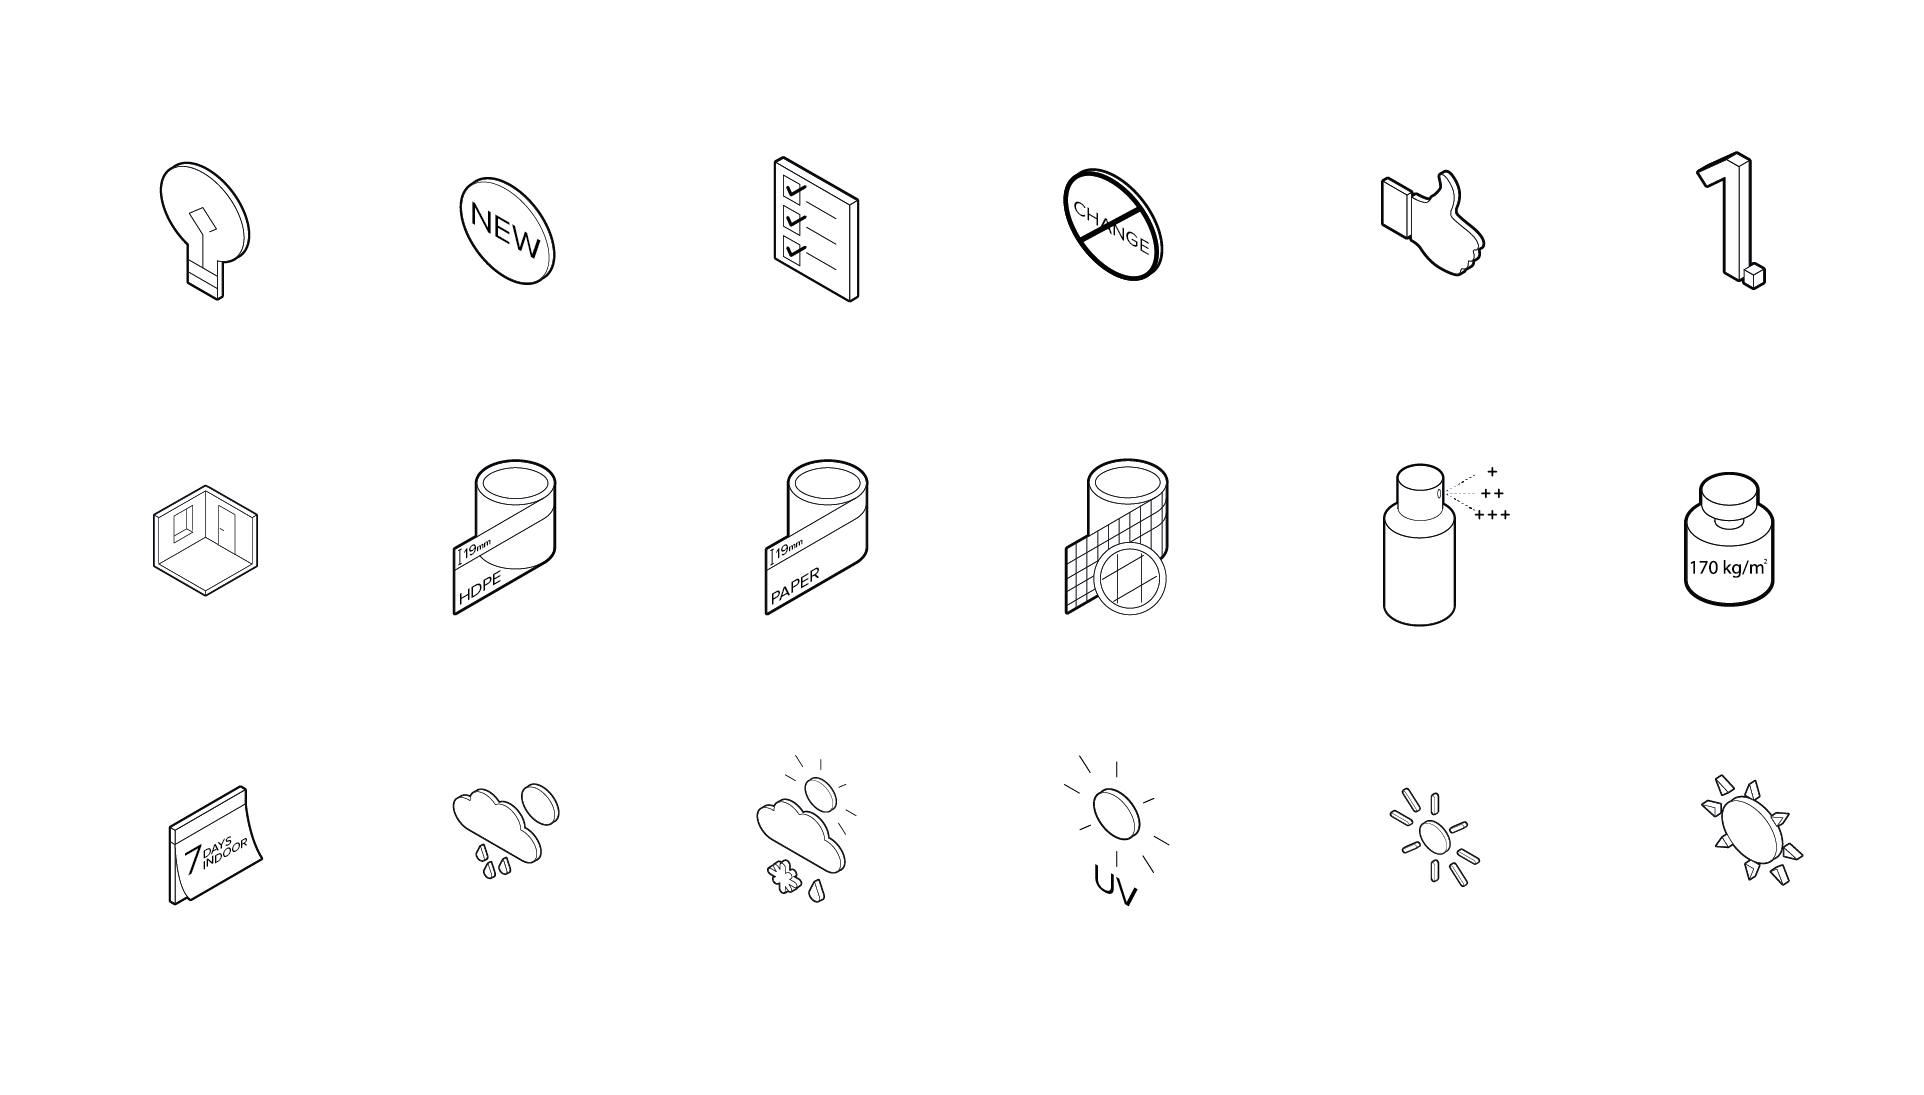 icons_isometrisch-09.png